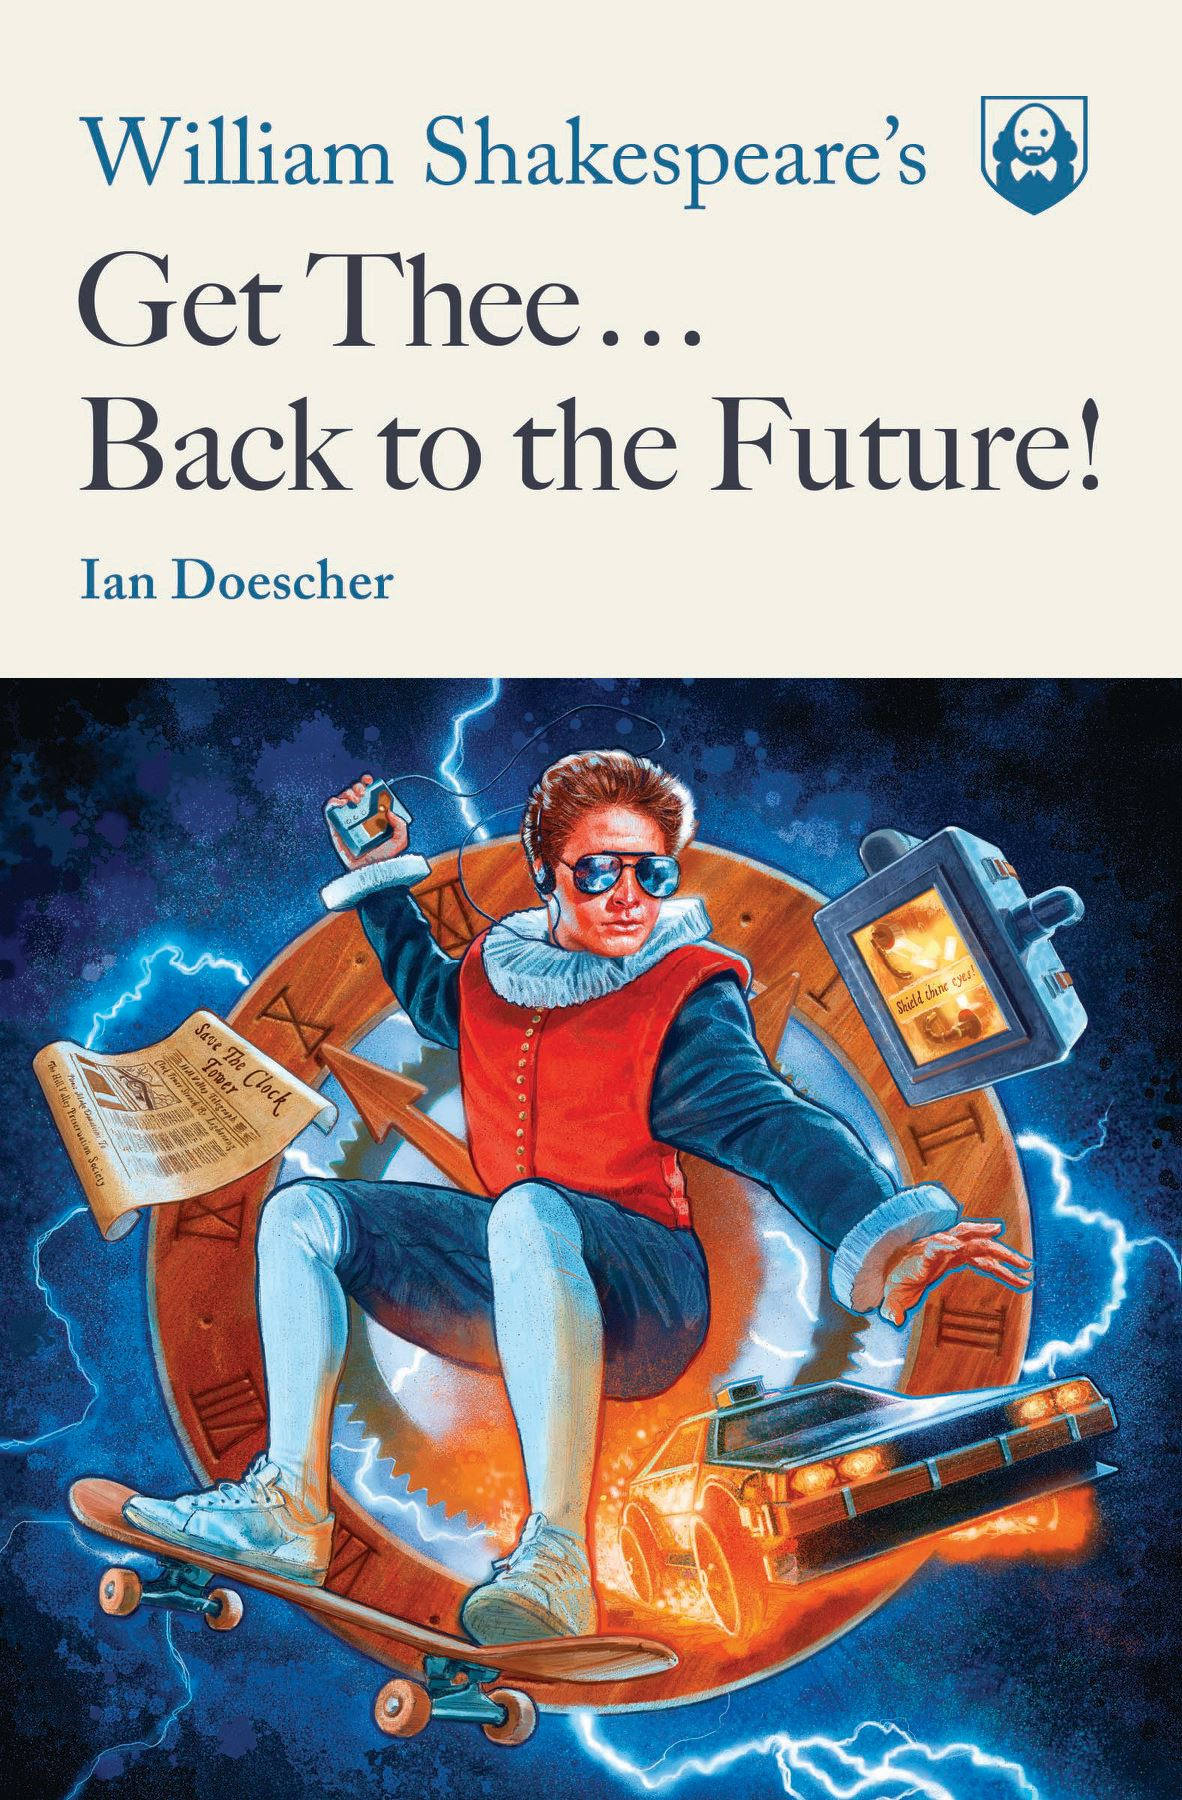 Get Thee Back to the Future